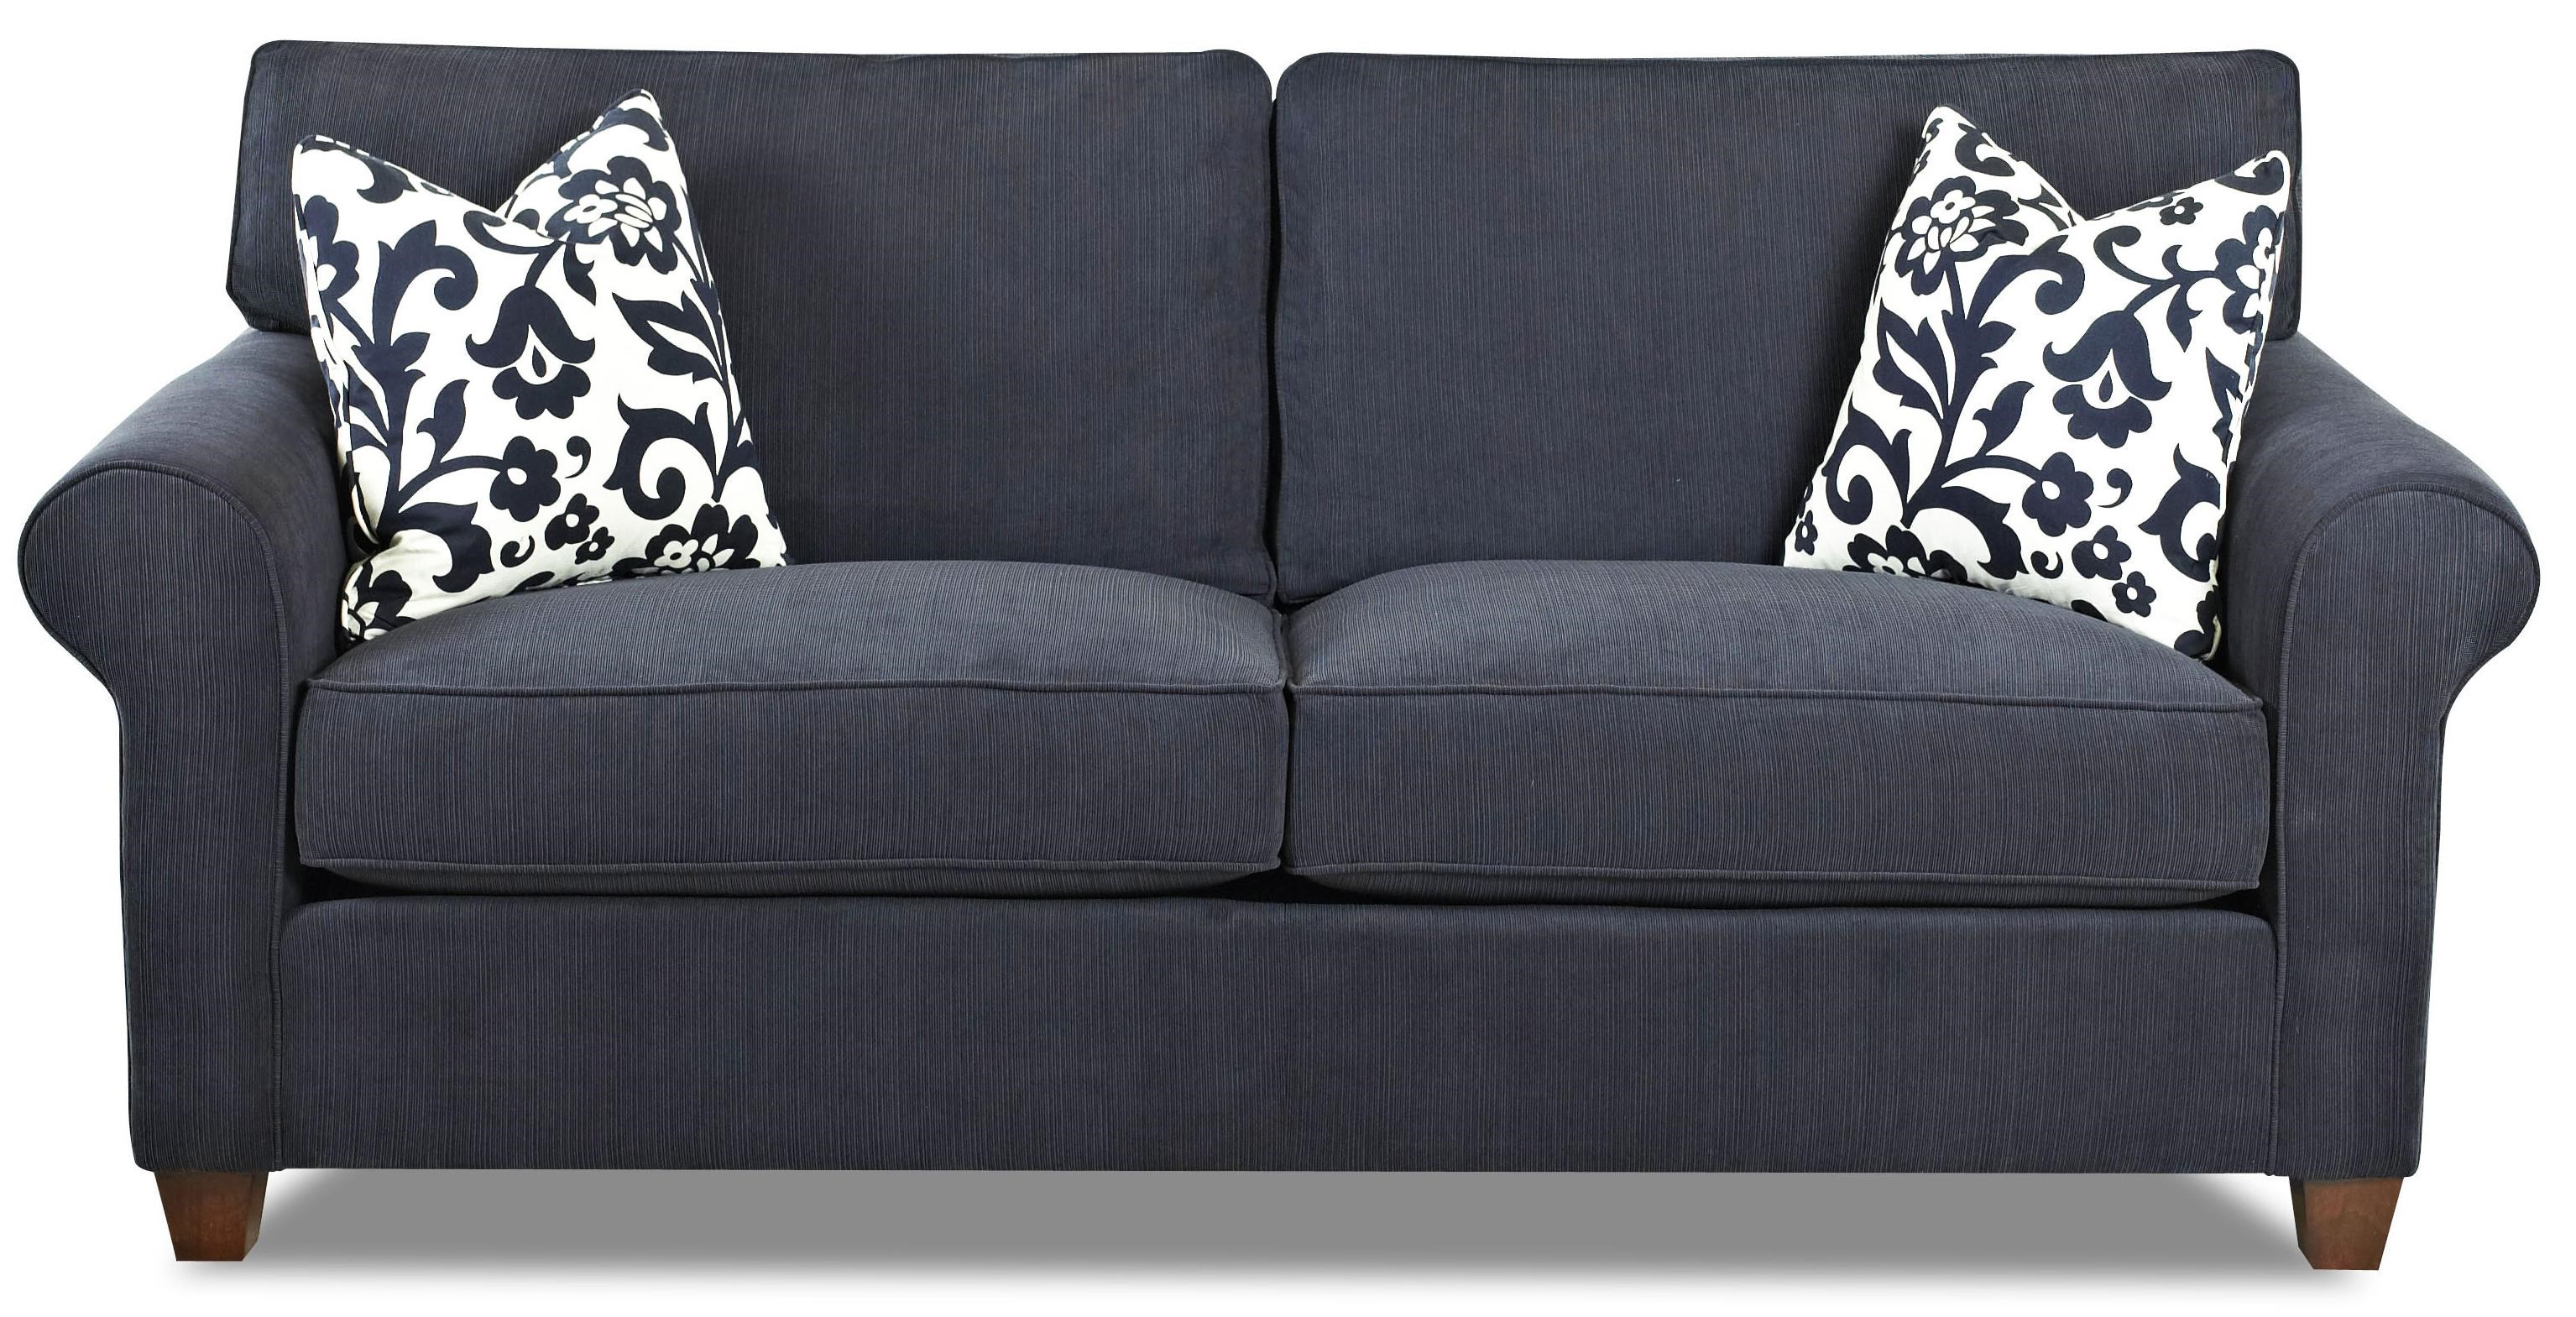 Klaussner Lillington Distinctions Transitional Queen Sleeper Sofa